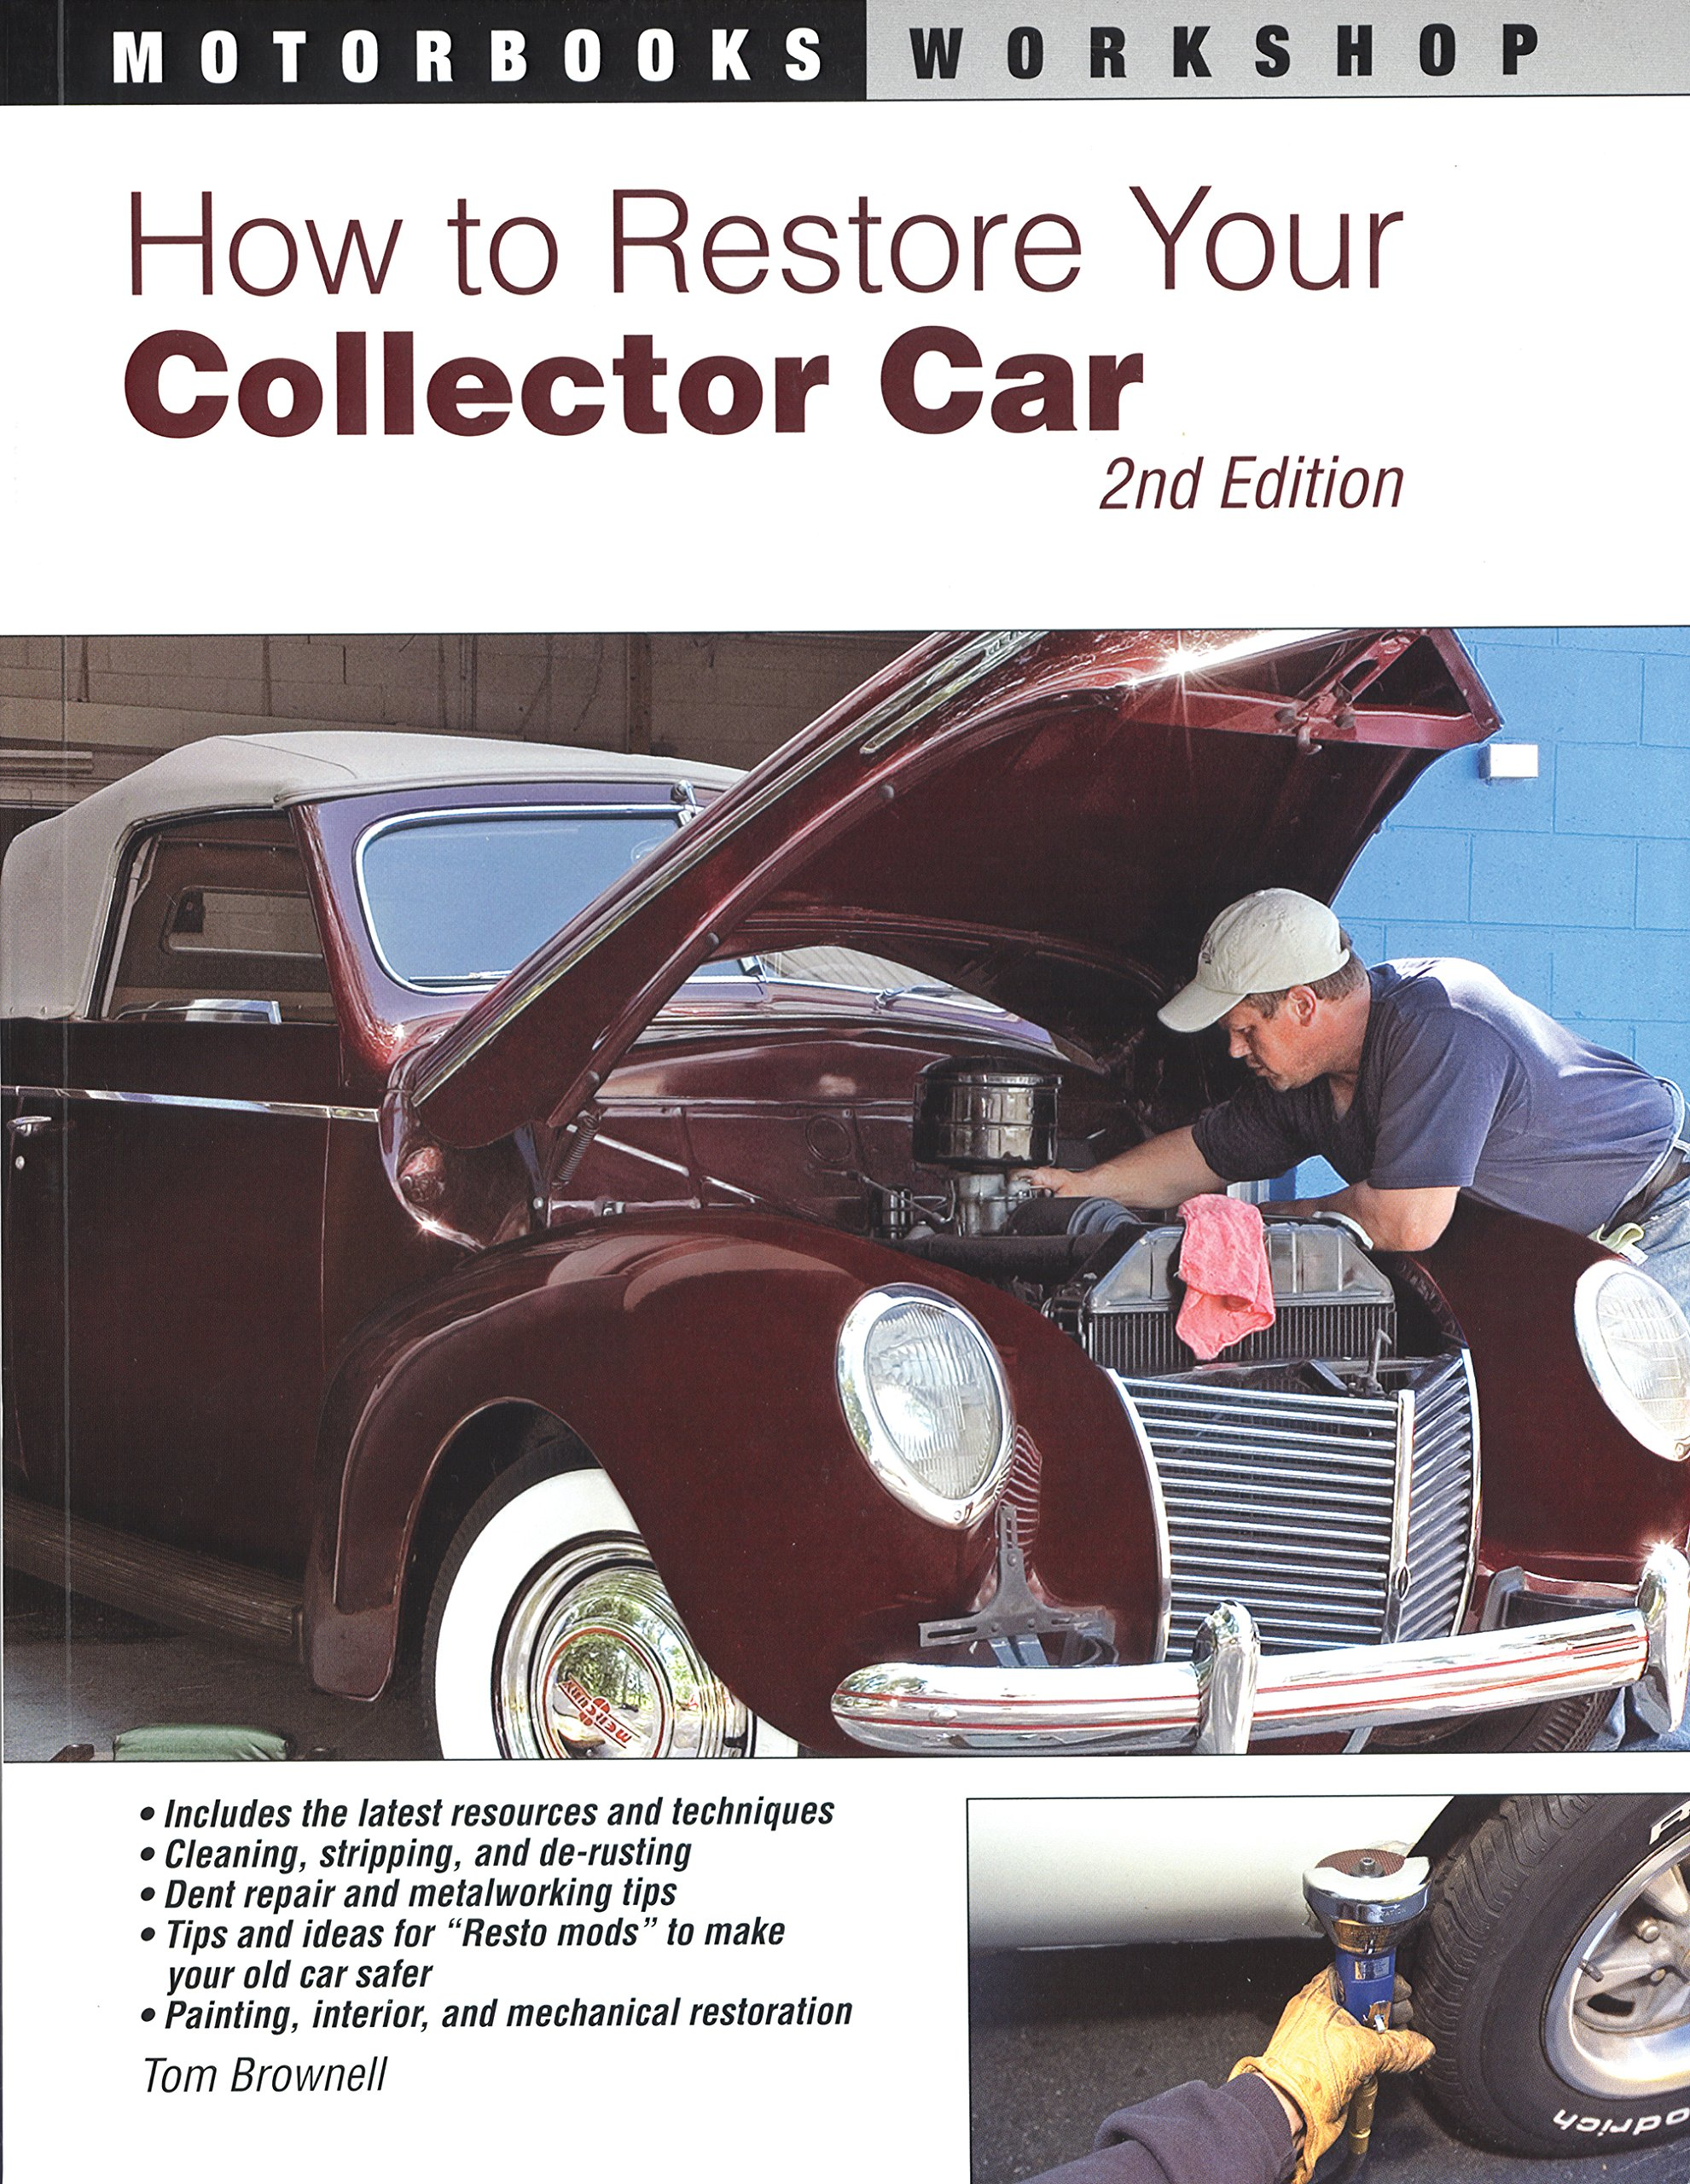 How to Restore Your Collector Car: 2nd Edition: Tom Brownell, Jason ...